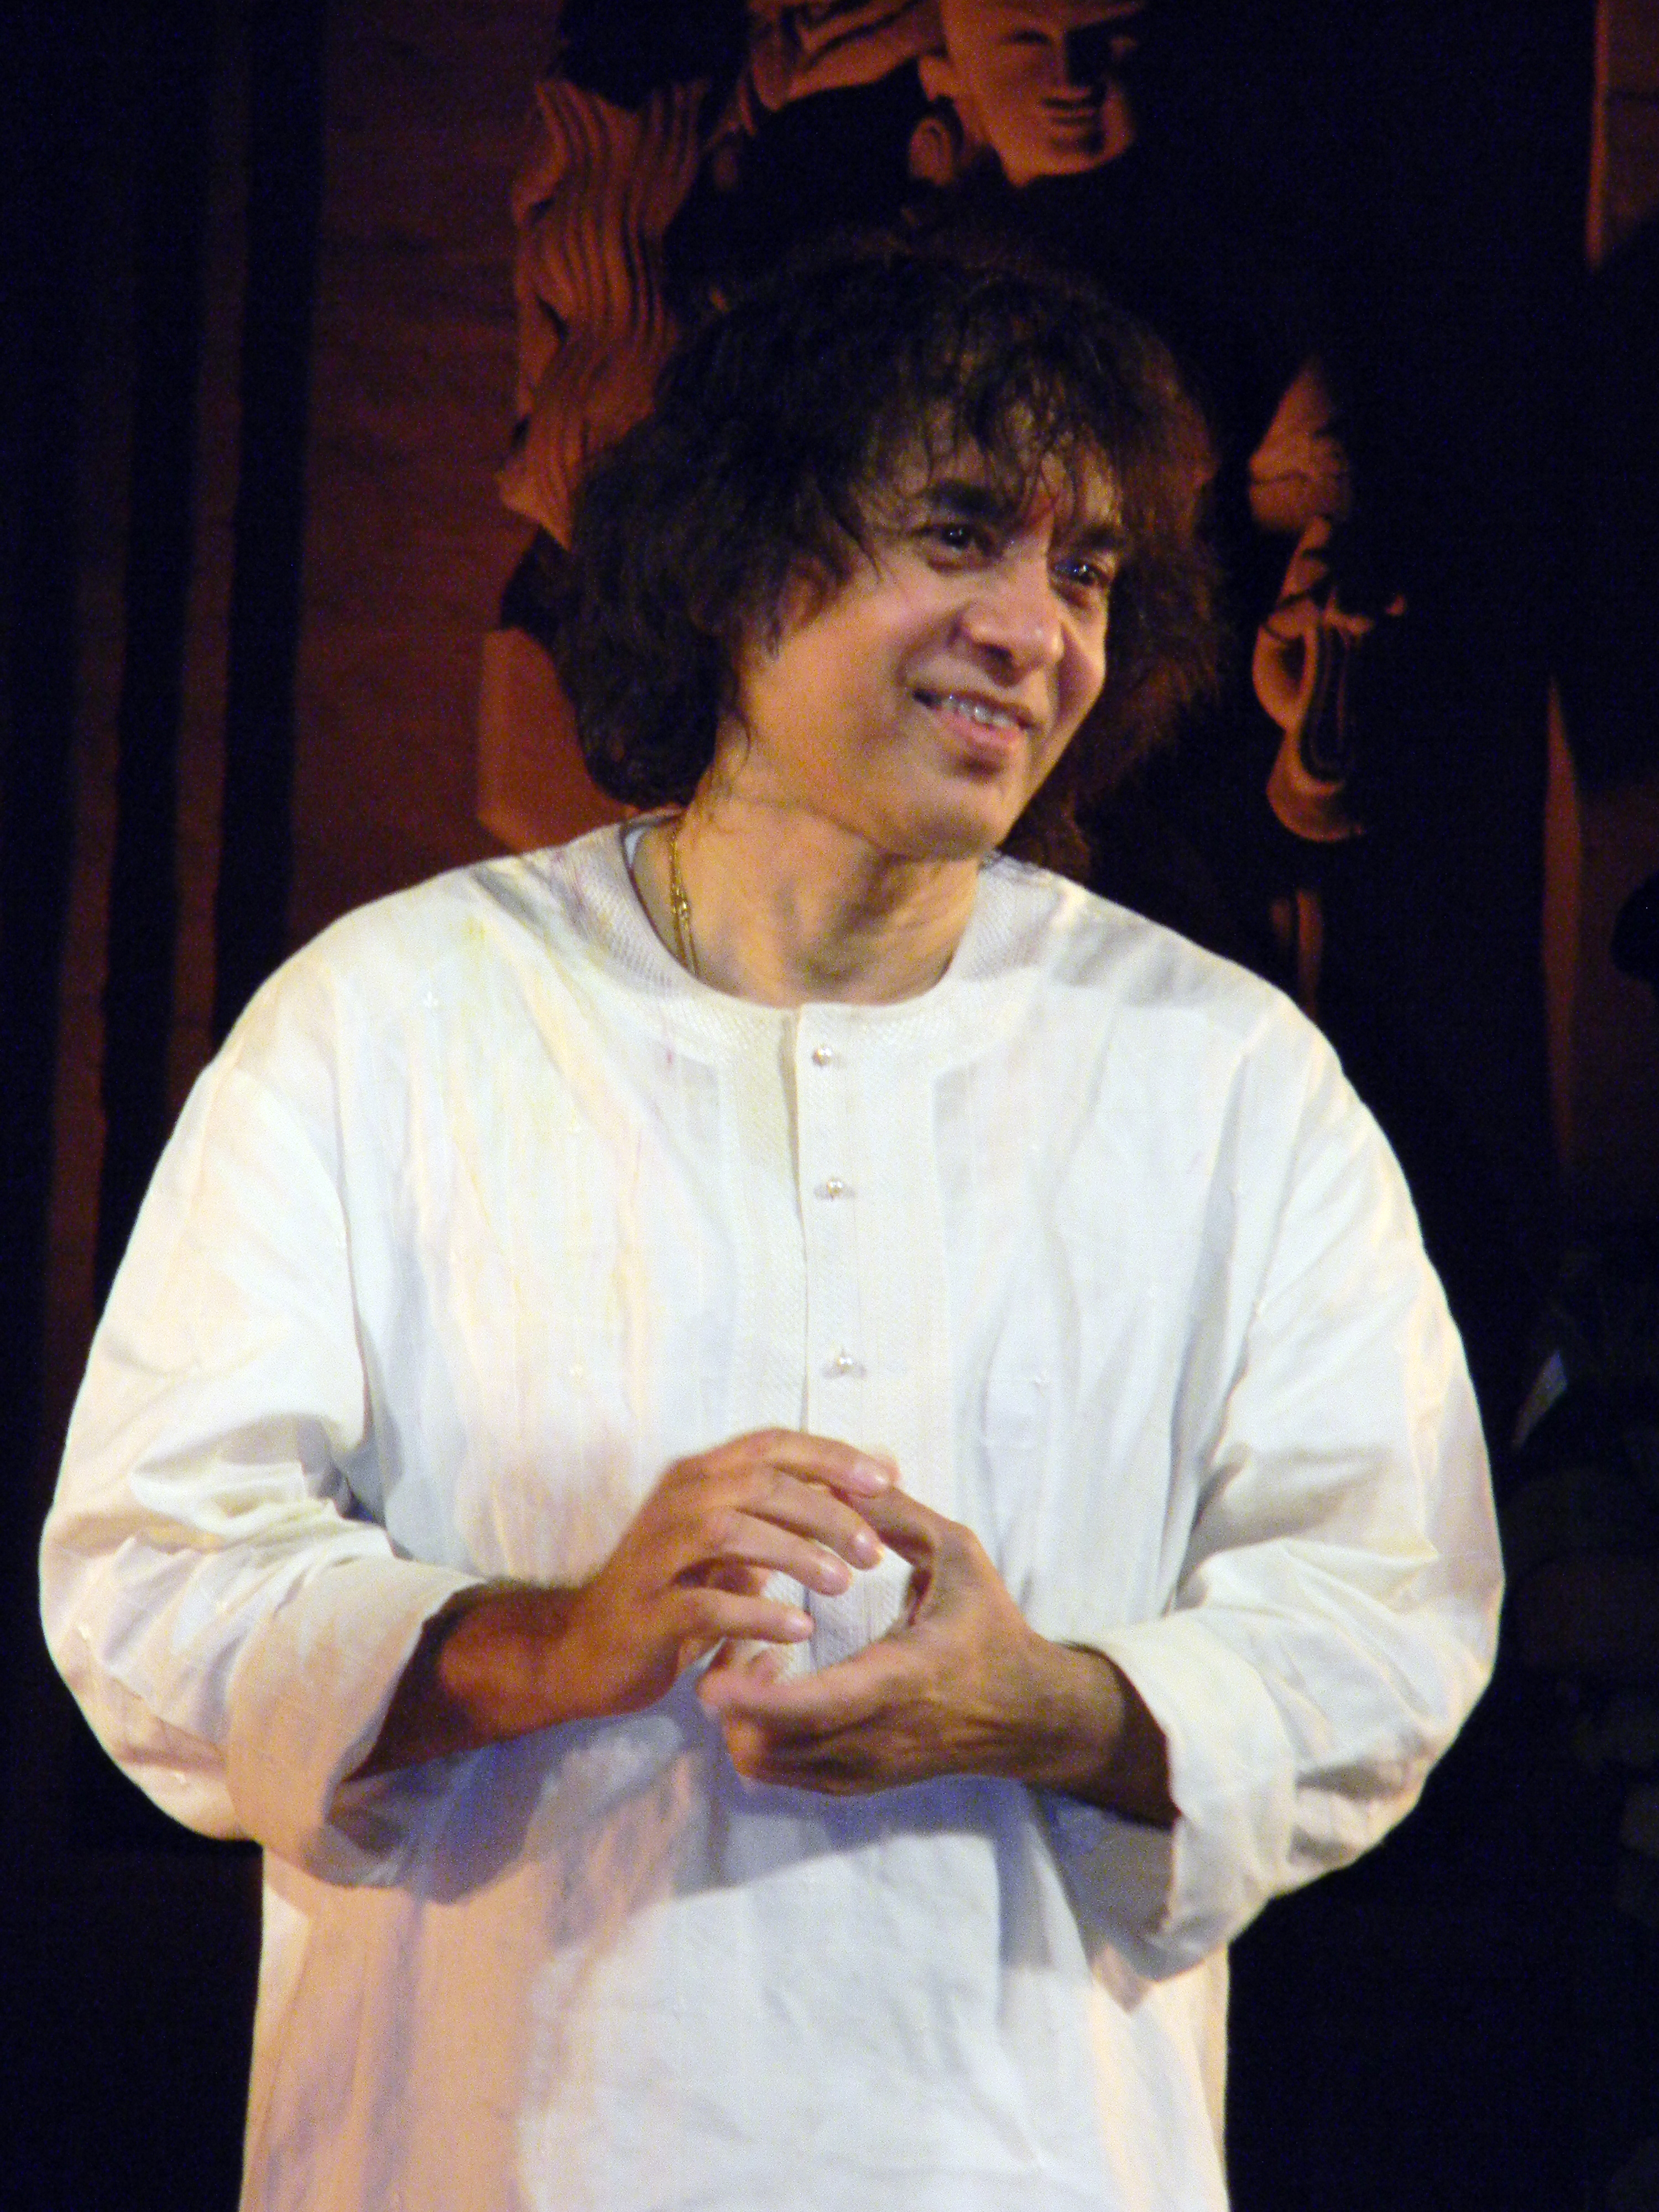 The 67-year old son of father (?) and mother(?), 176 cm tall Zakir Hussain in 2018 photo